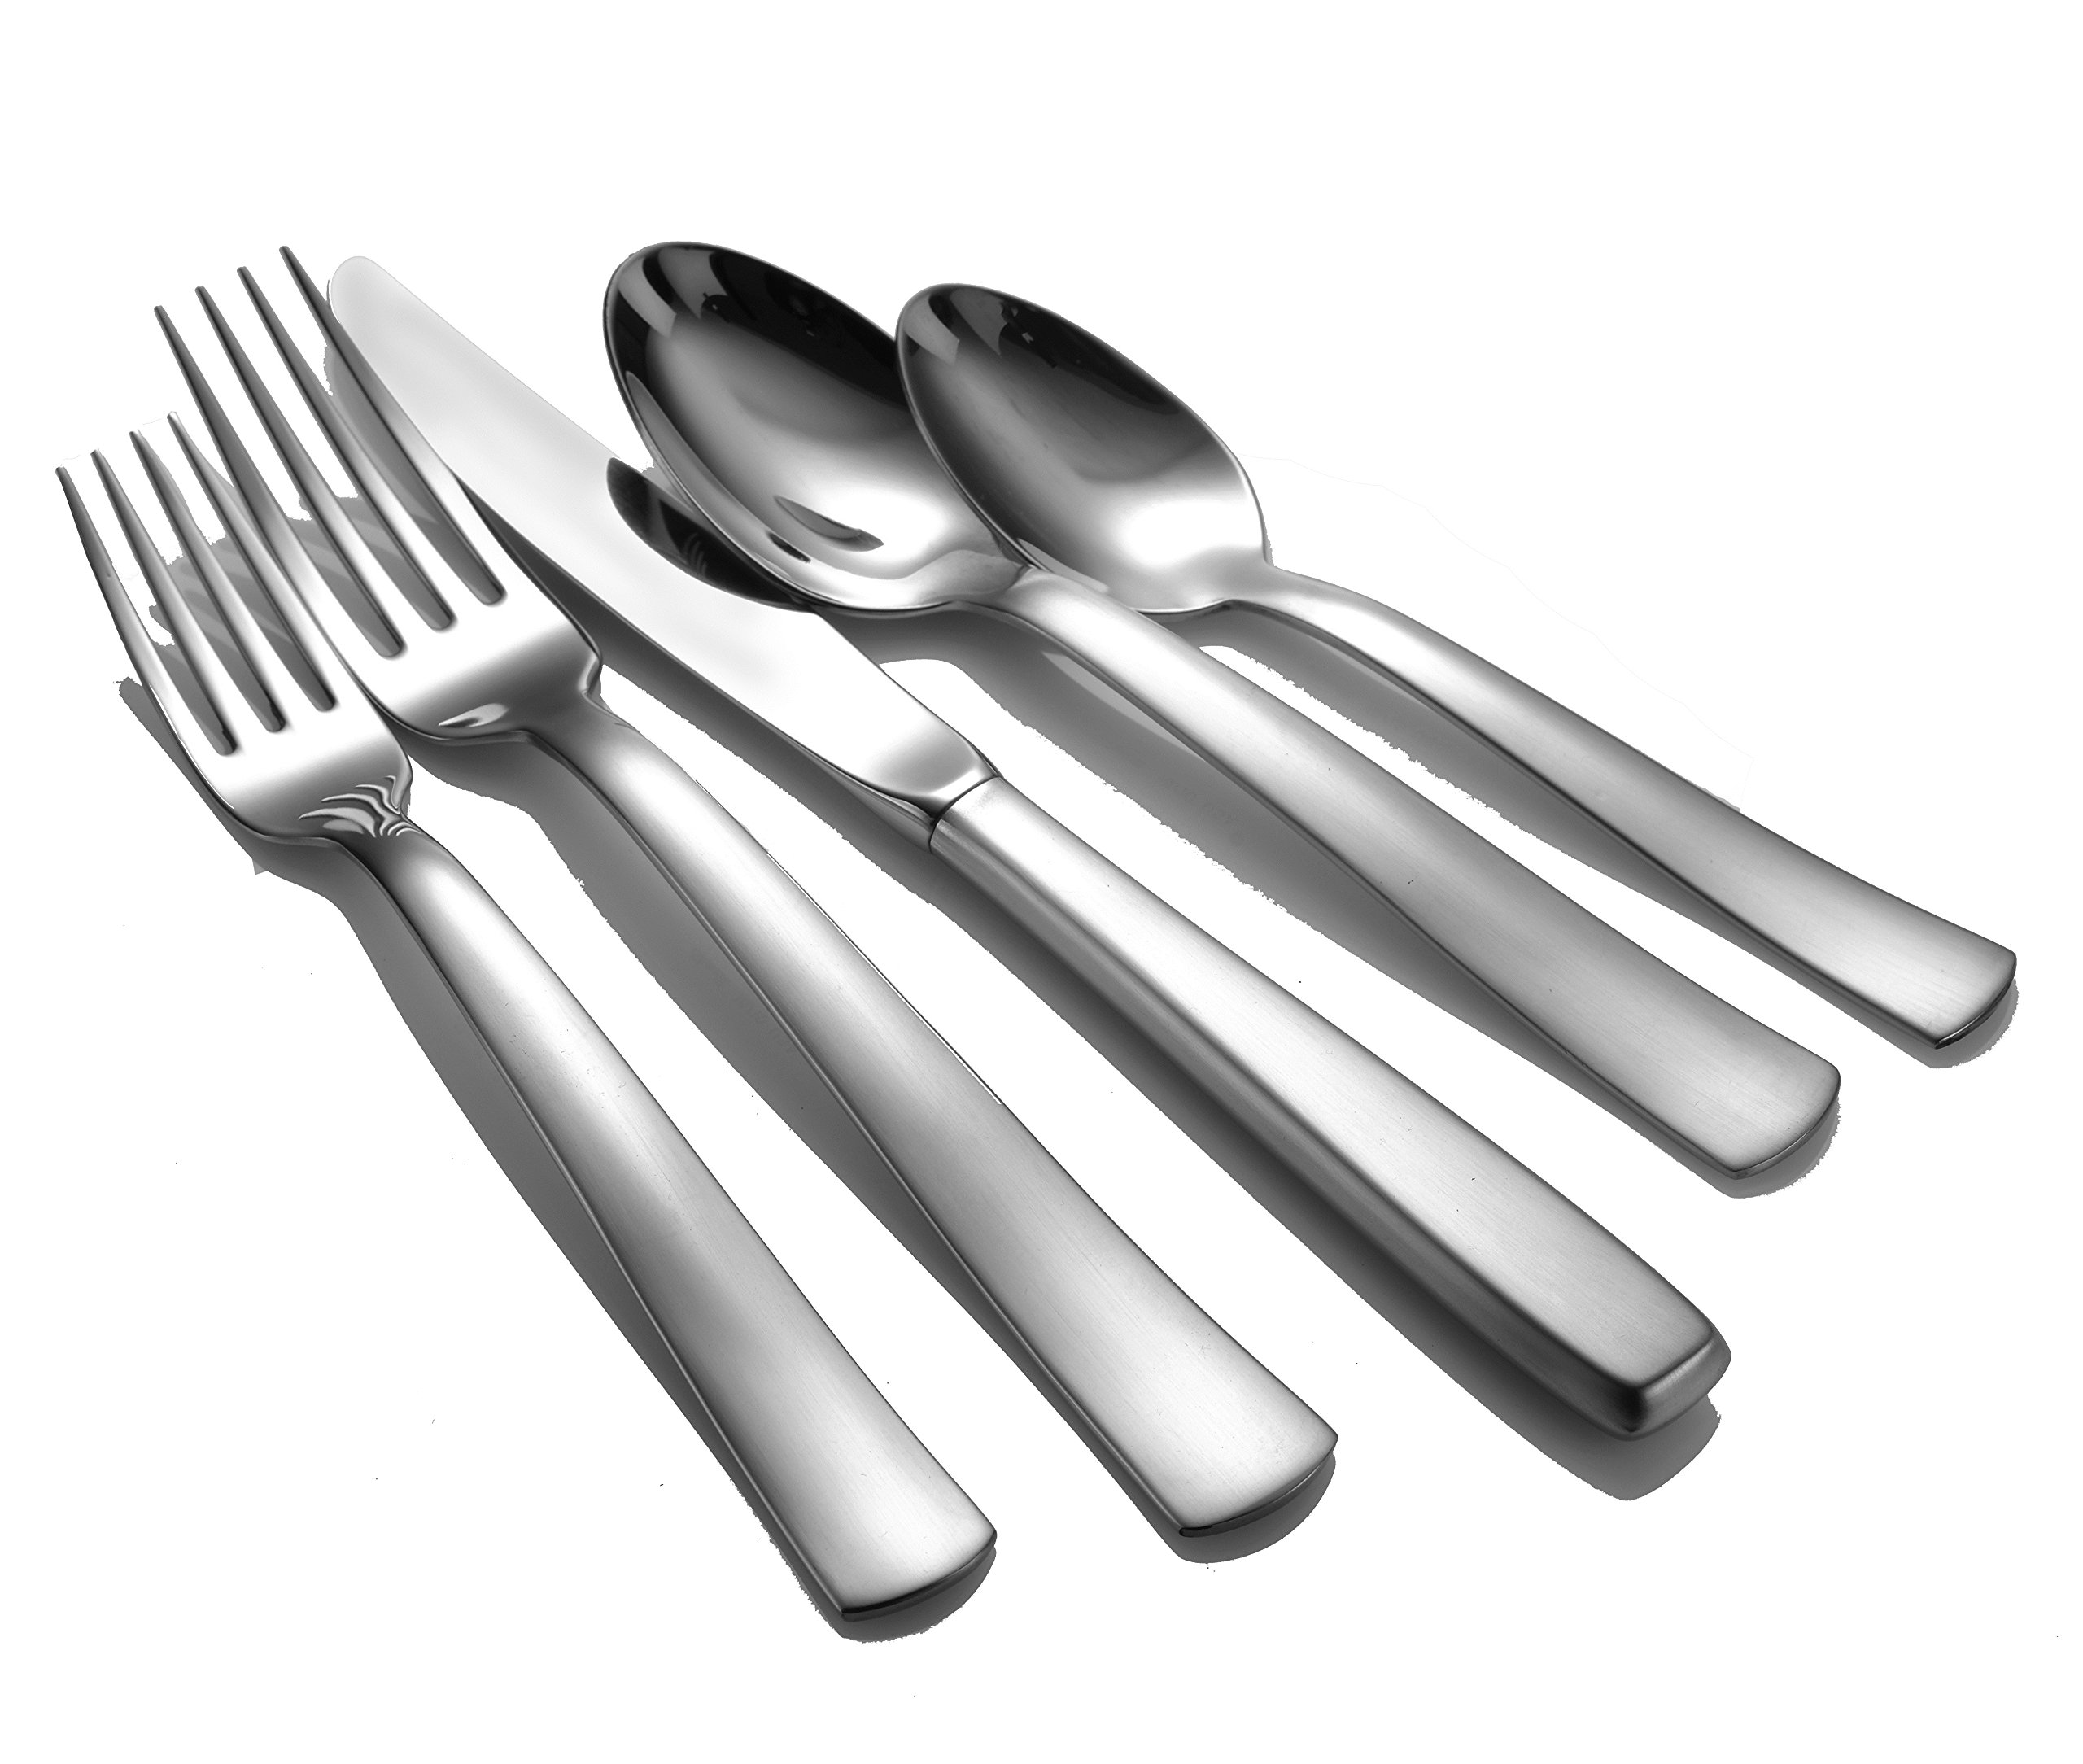 Liberty Tabletop Satin America 45-piece 18/10 Flatware Set for 8 Made in USA by Liberty Tabletop